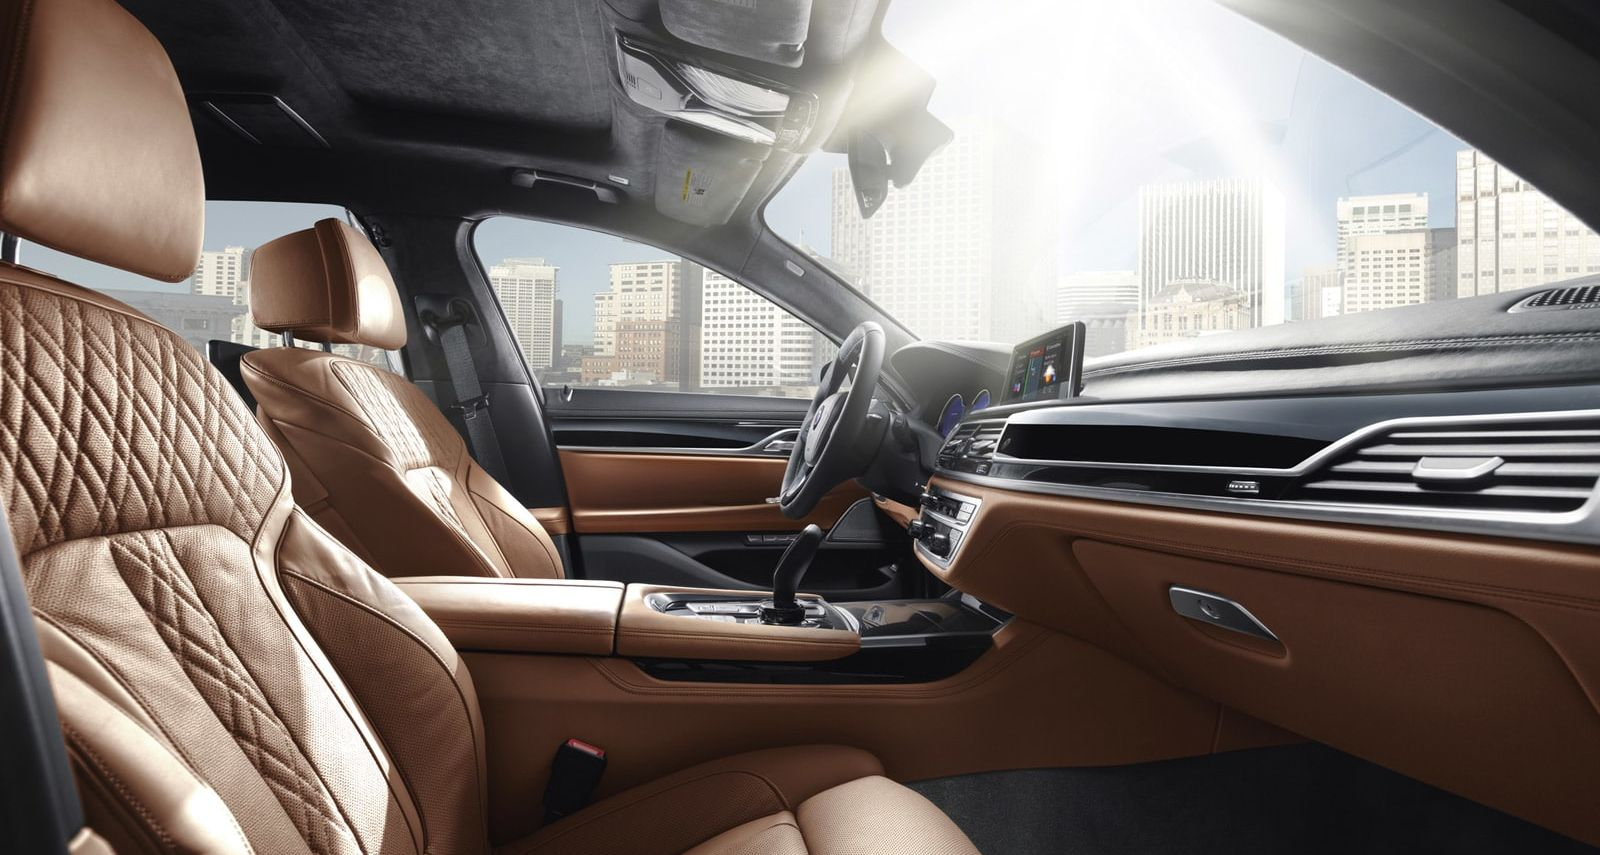 Exquisite Seating in the BMW 7 Series